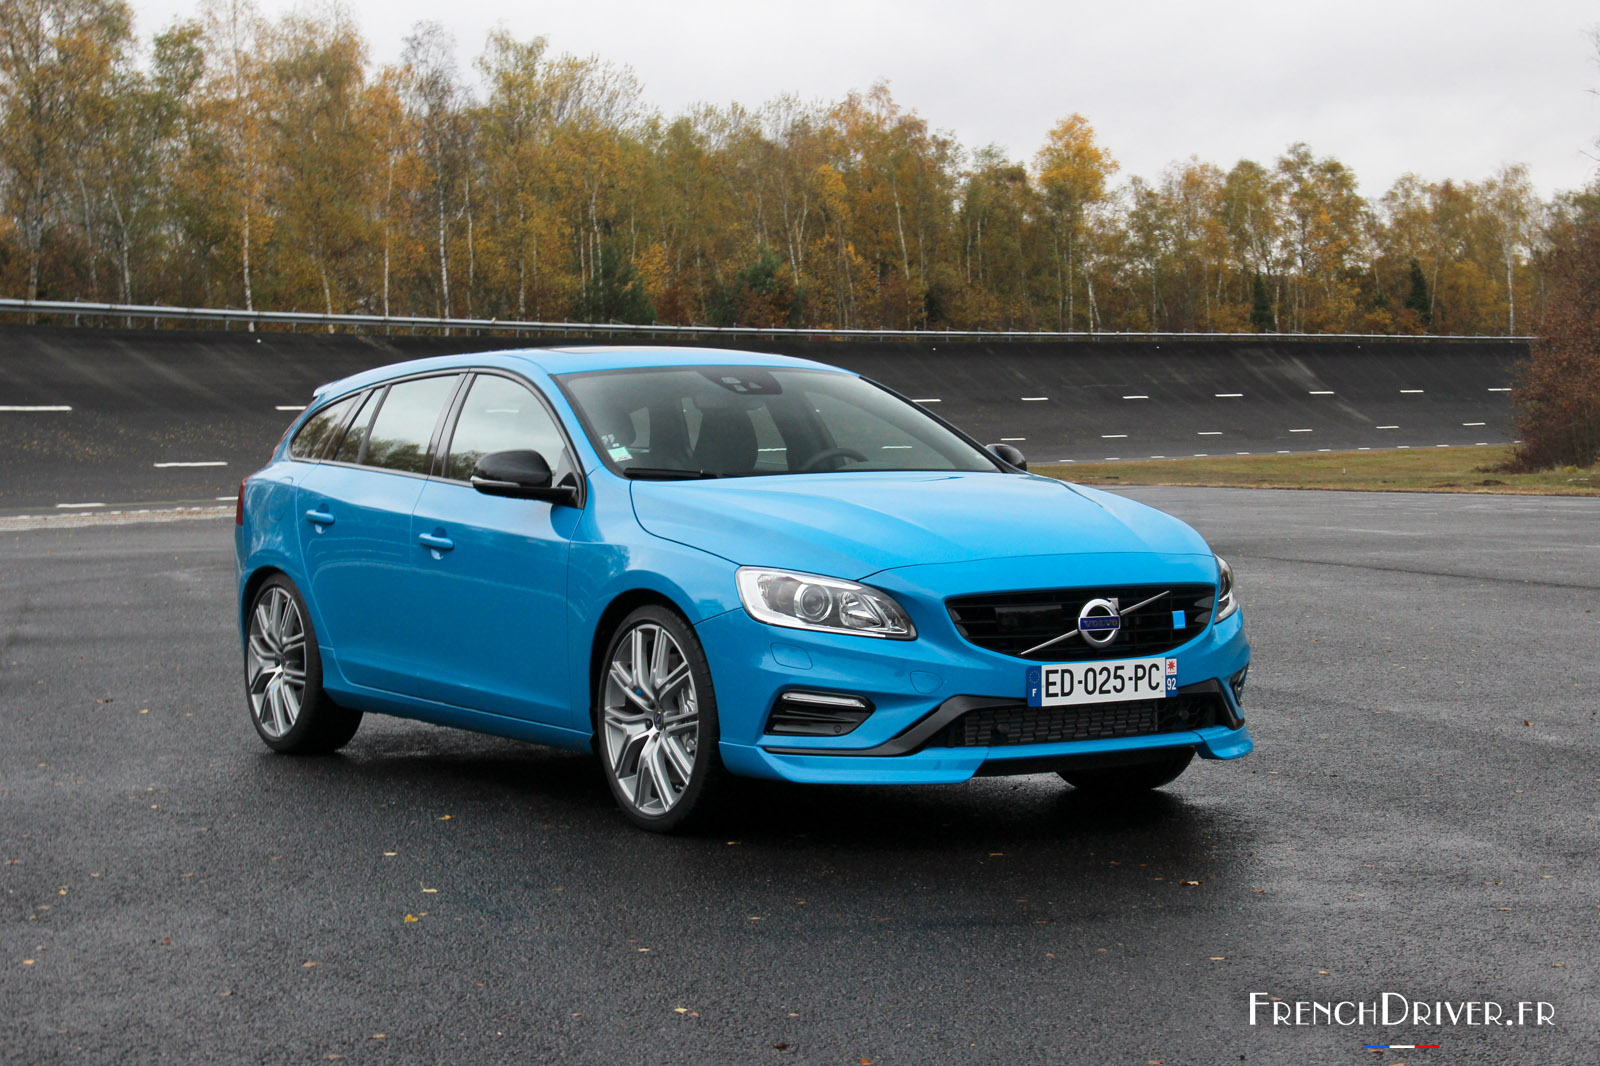 essai volvo v60 et s60 polestar entre performance et polyvalence french driver. Black Bedroom Furniture Sets. Home Design Ideas